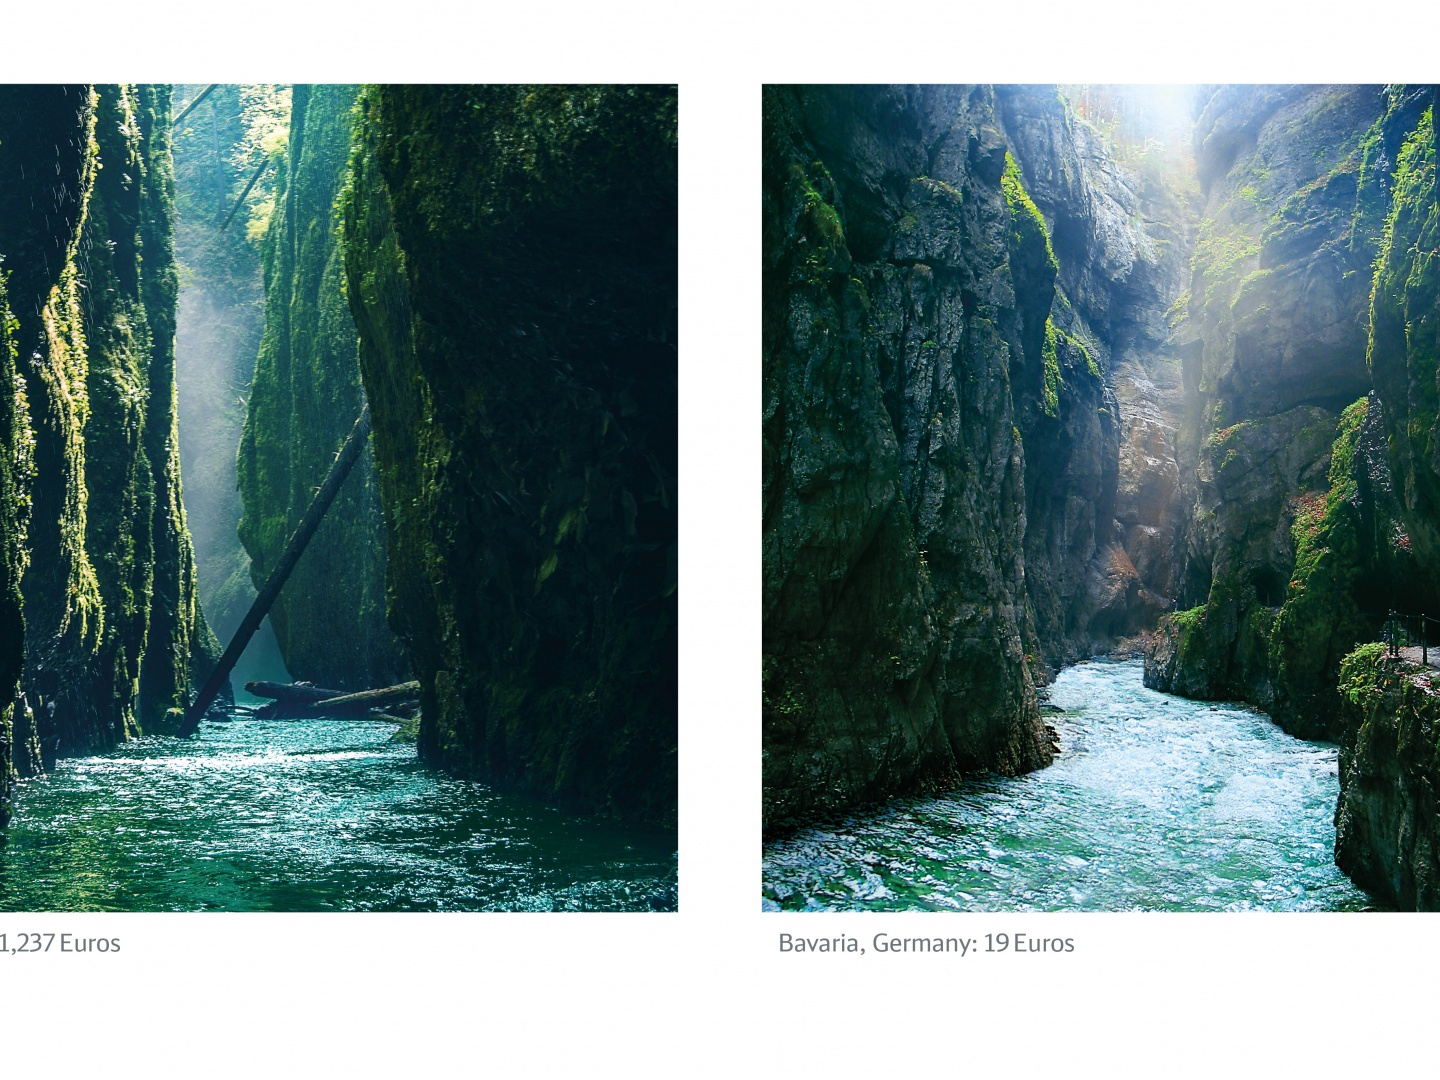 Image for No need to fly – Around the world in Germany: Oregon - Bavaria